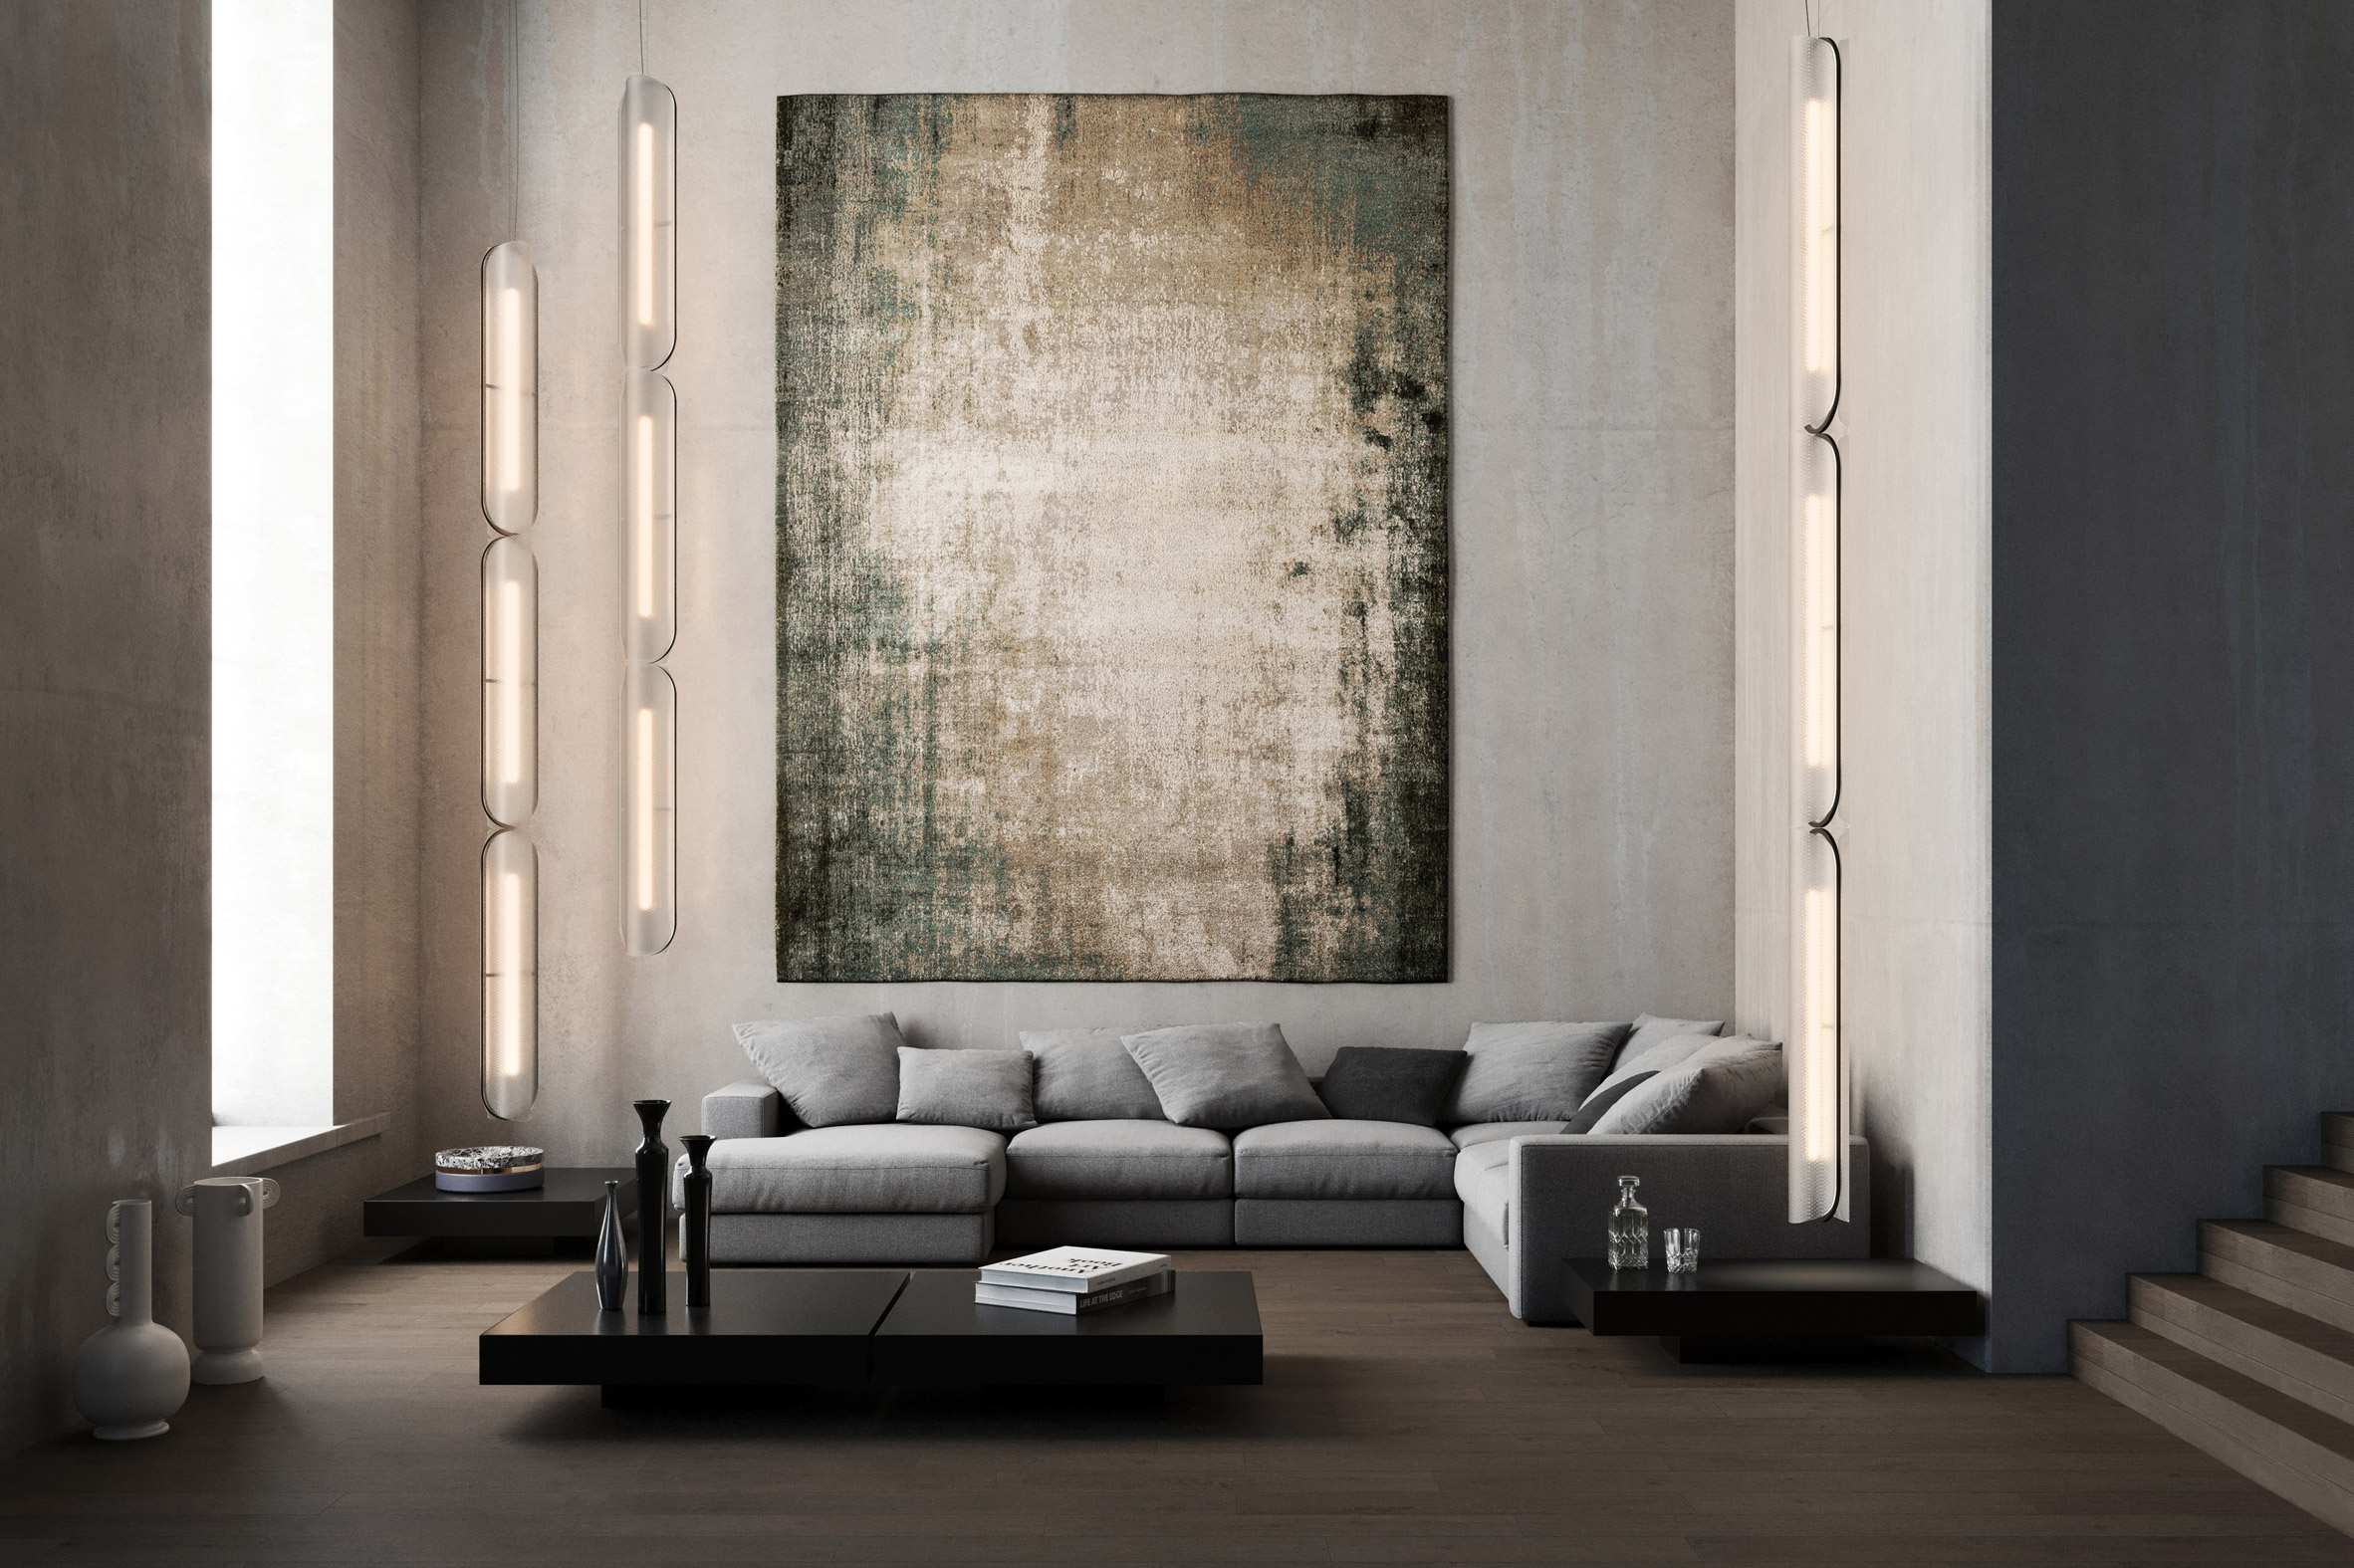 Val lighting by Caine Heintzman for ANDlight